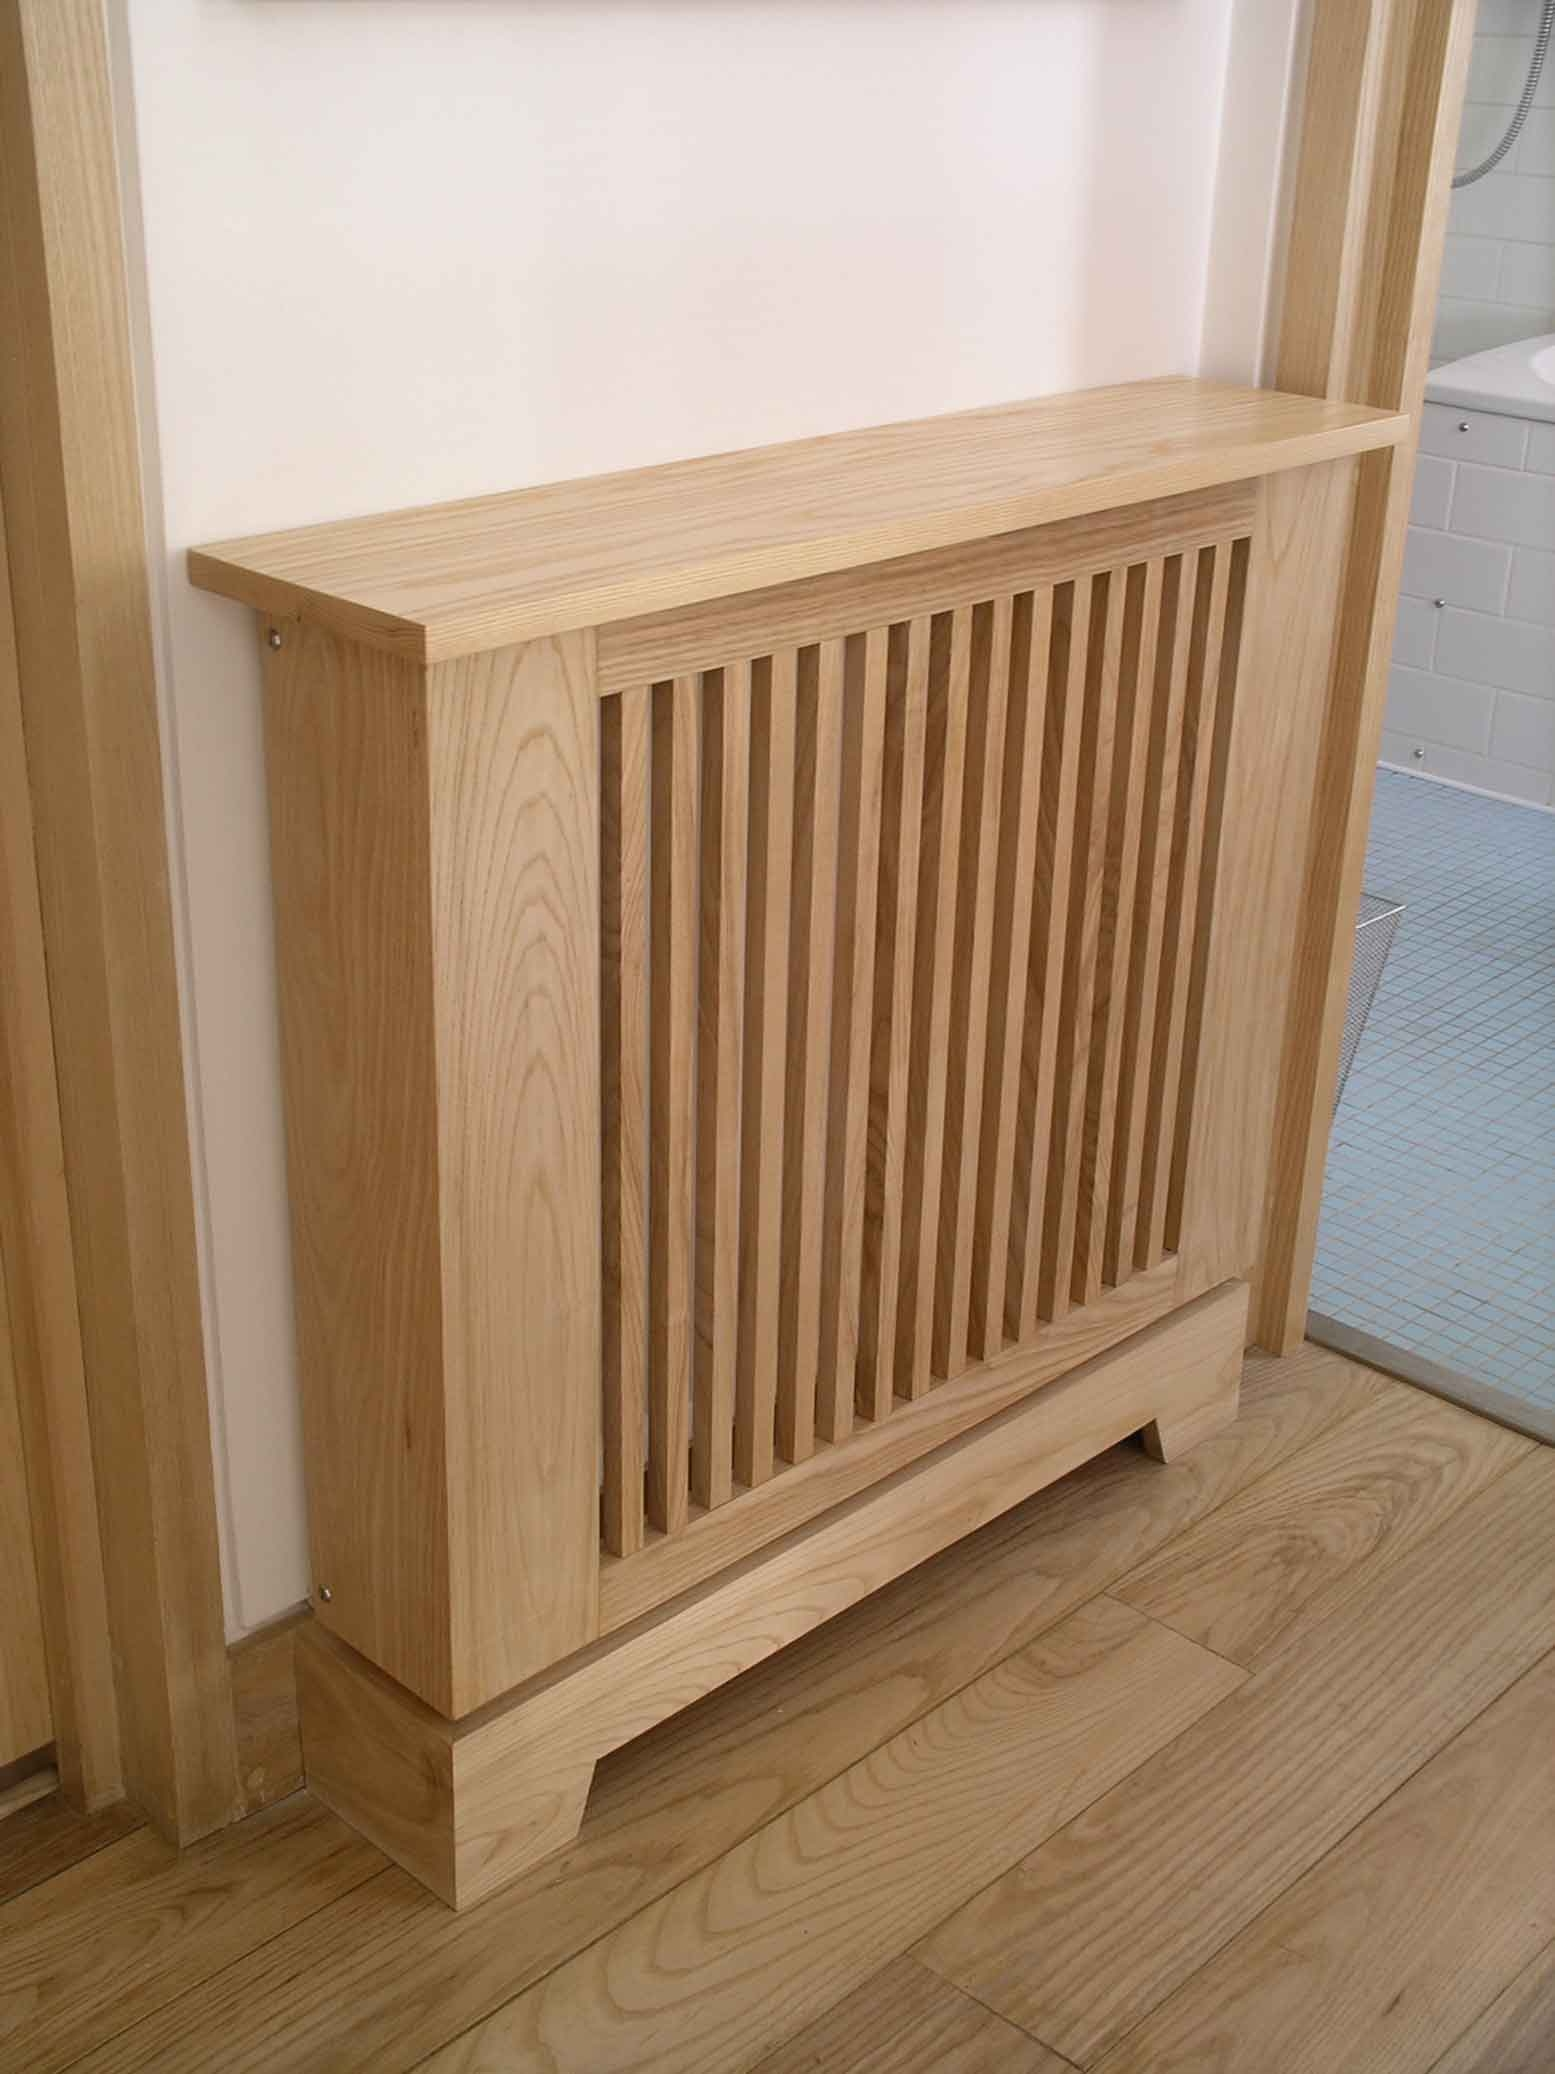 Radiator Cabinet Bespoke Made Peter Henderson Furniture With Regard To Radiator Cupboards (View 14 of 15)